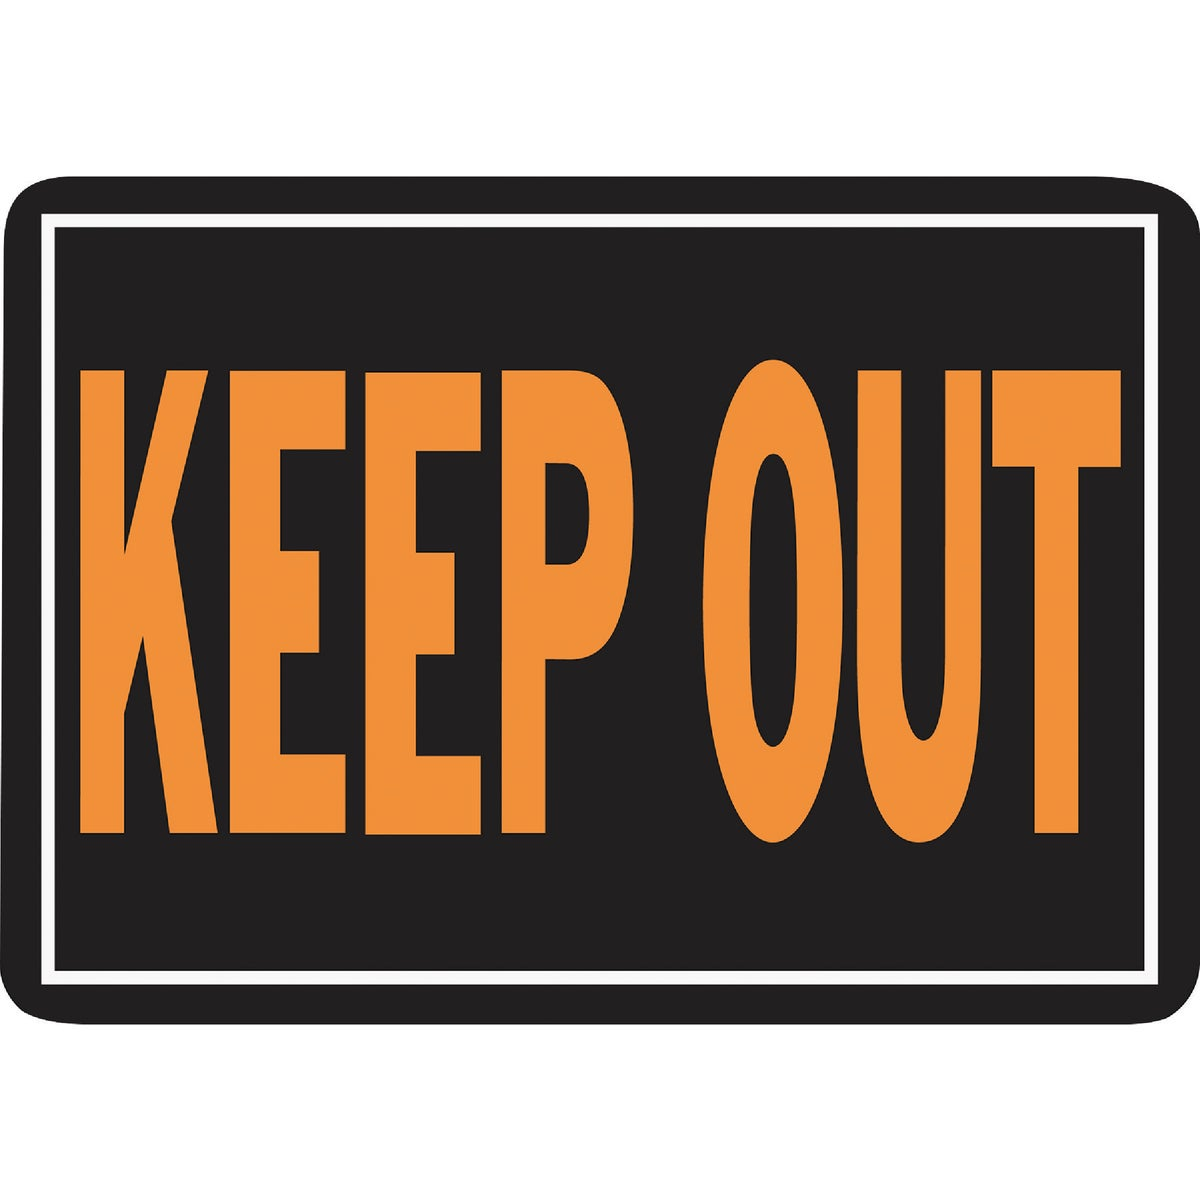 10X14 KEEP OUT SIGN